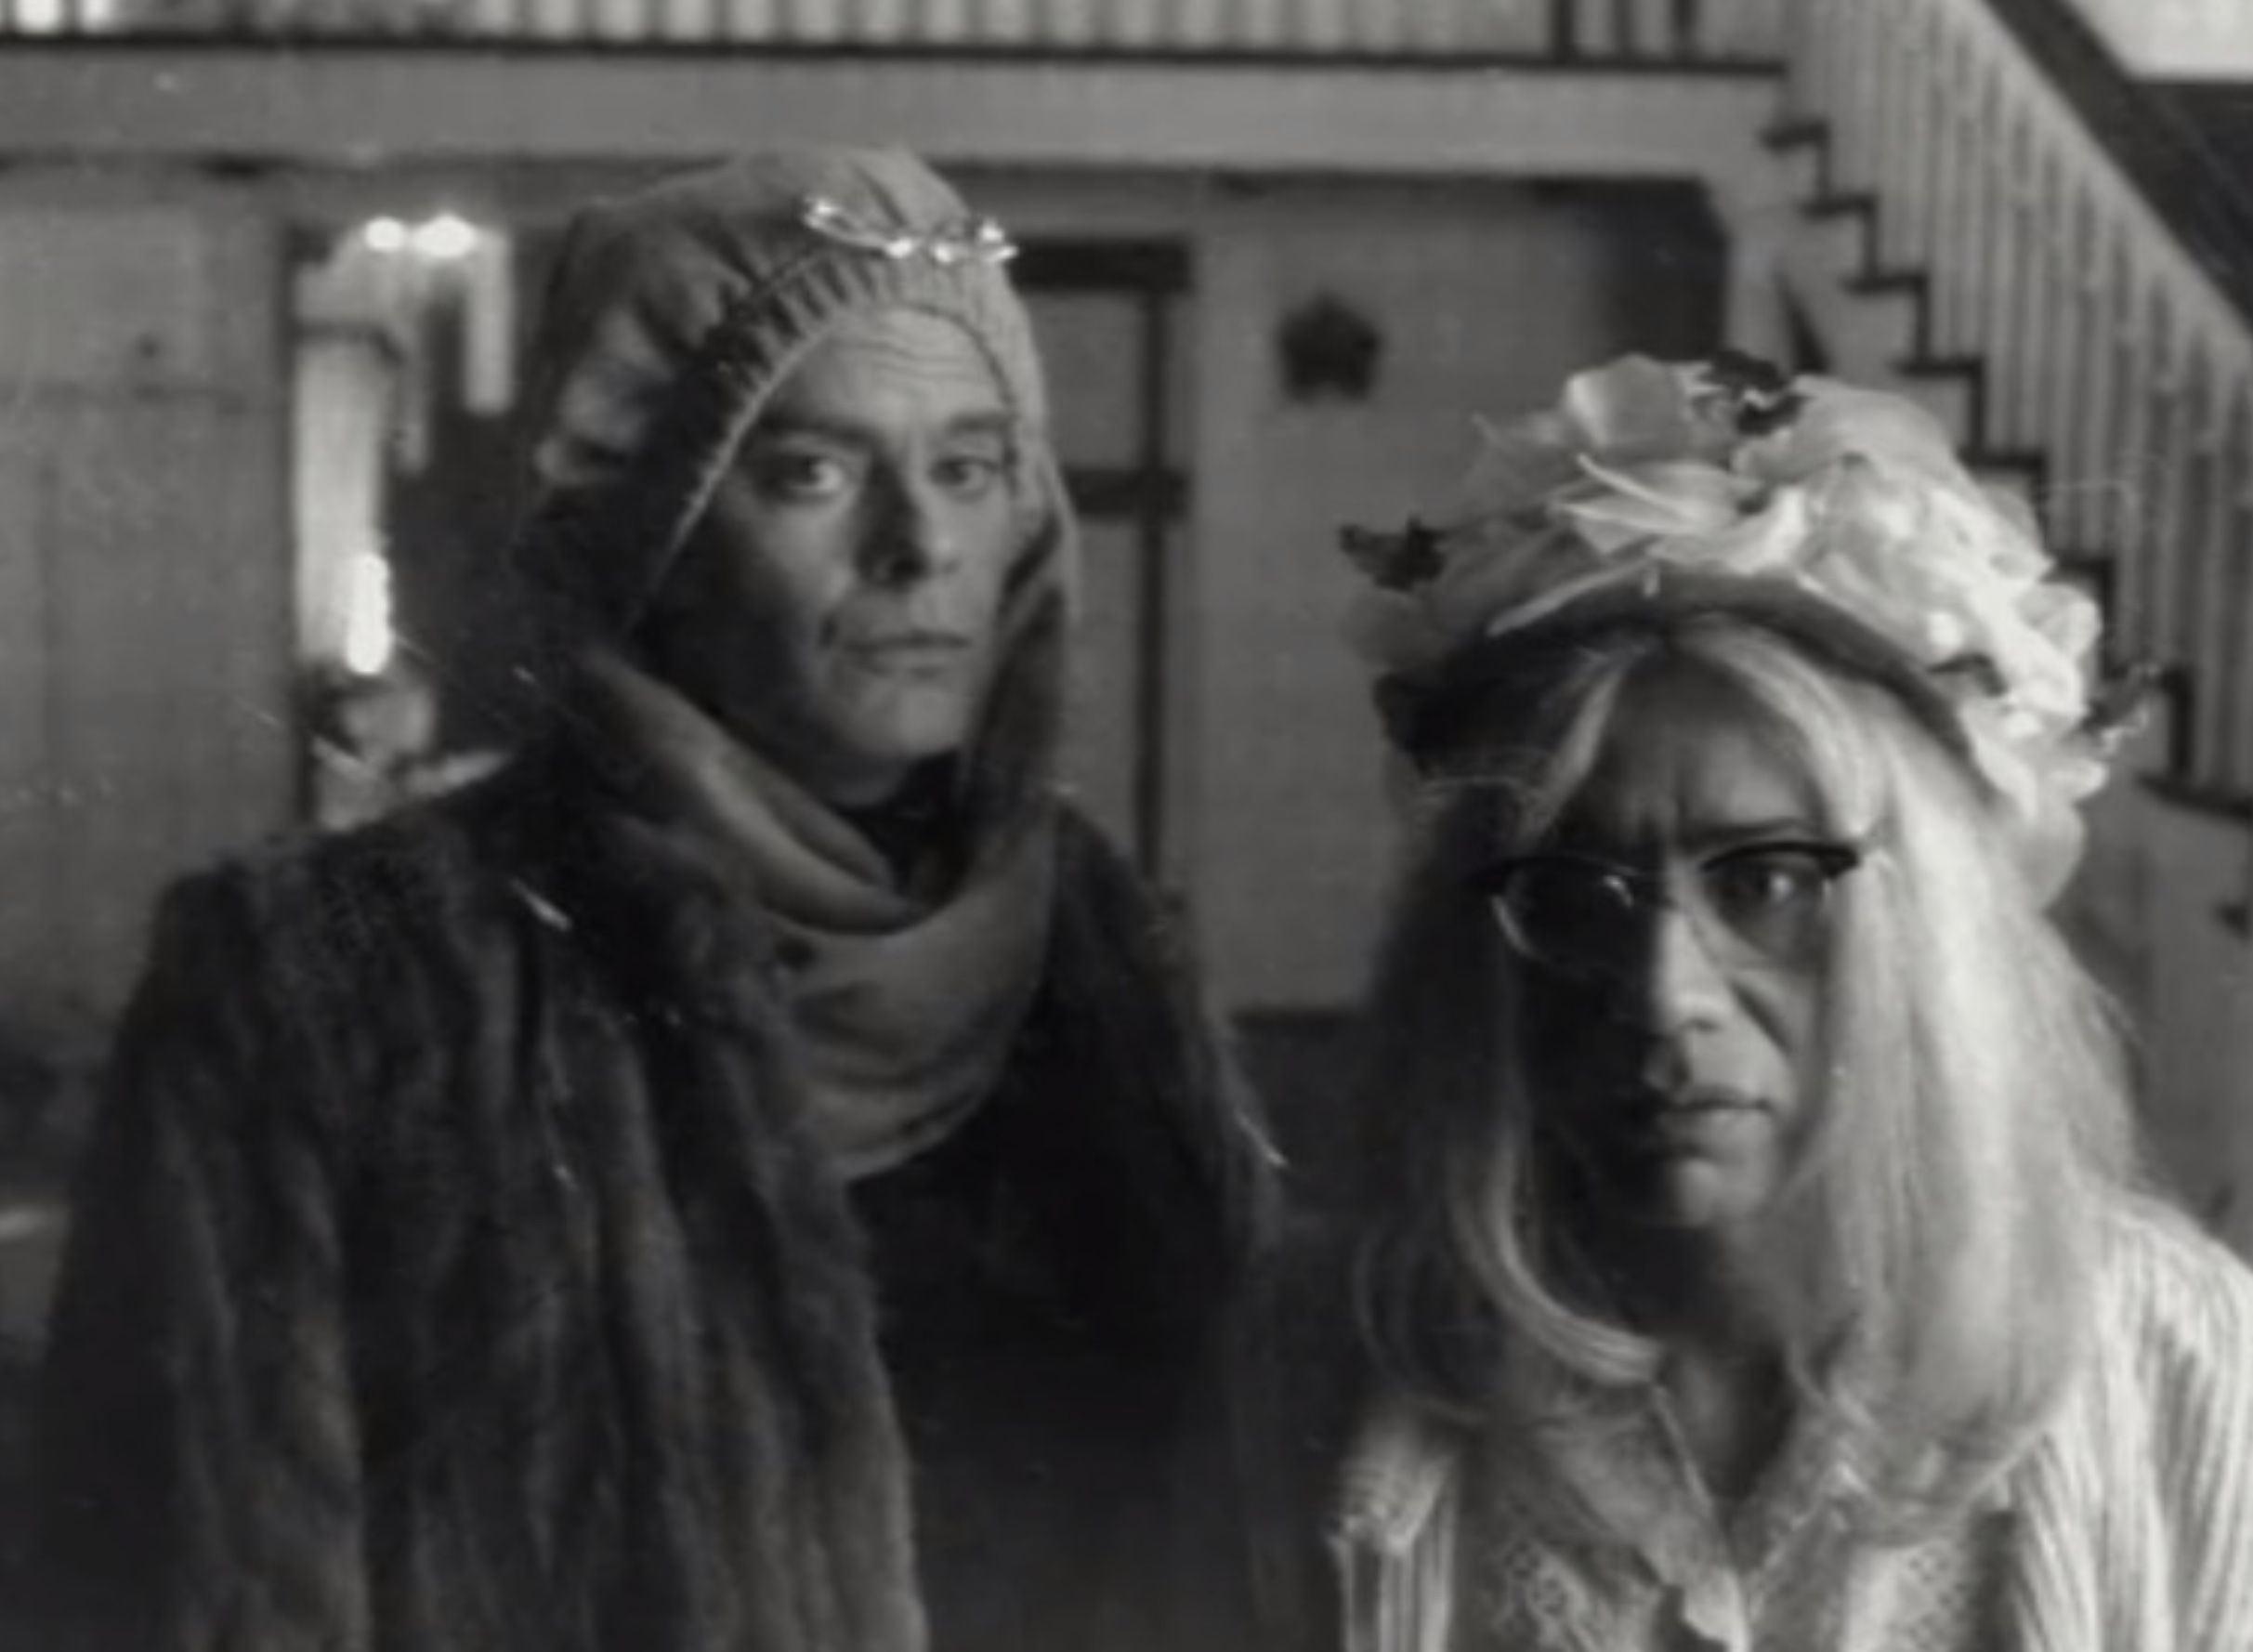 54a95b62c01d140c62cb9ef1df97d8d5 - Documentary Now Grey Gardens Full Episode